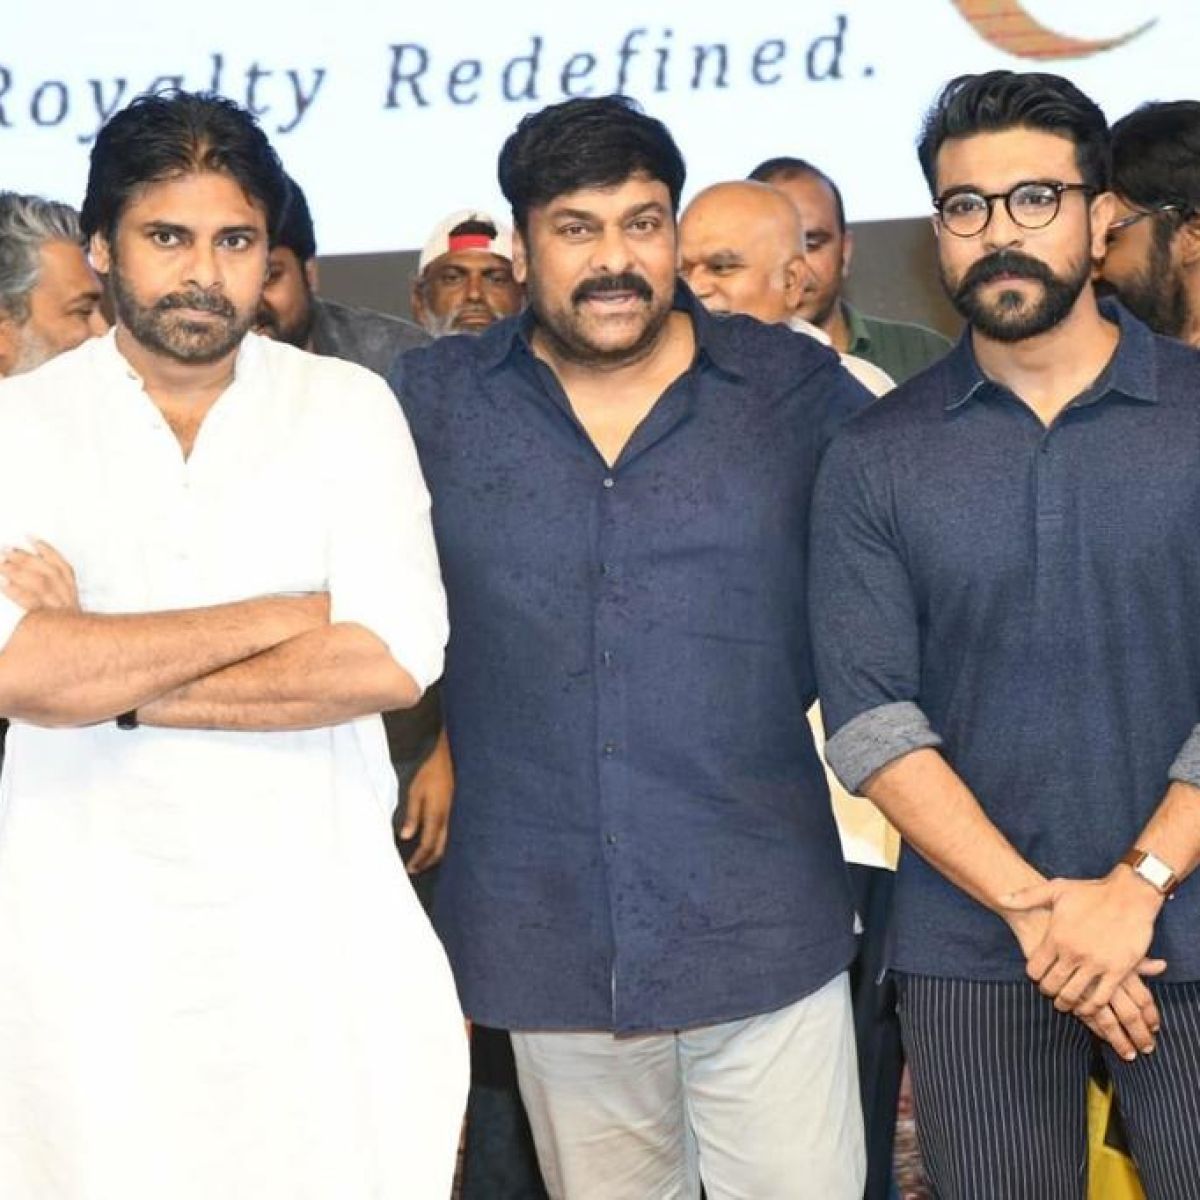 Telugu star Ram Charan to donate Rs 70 lakh as COVID-19 aid